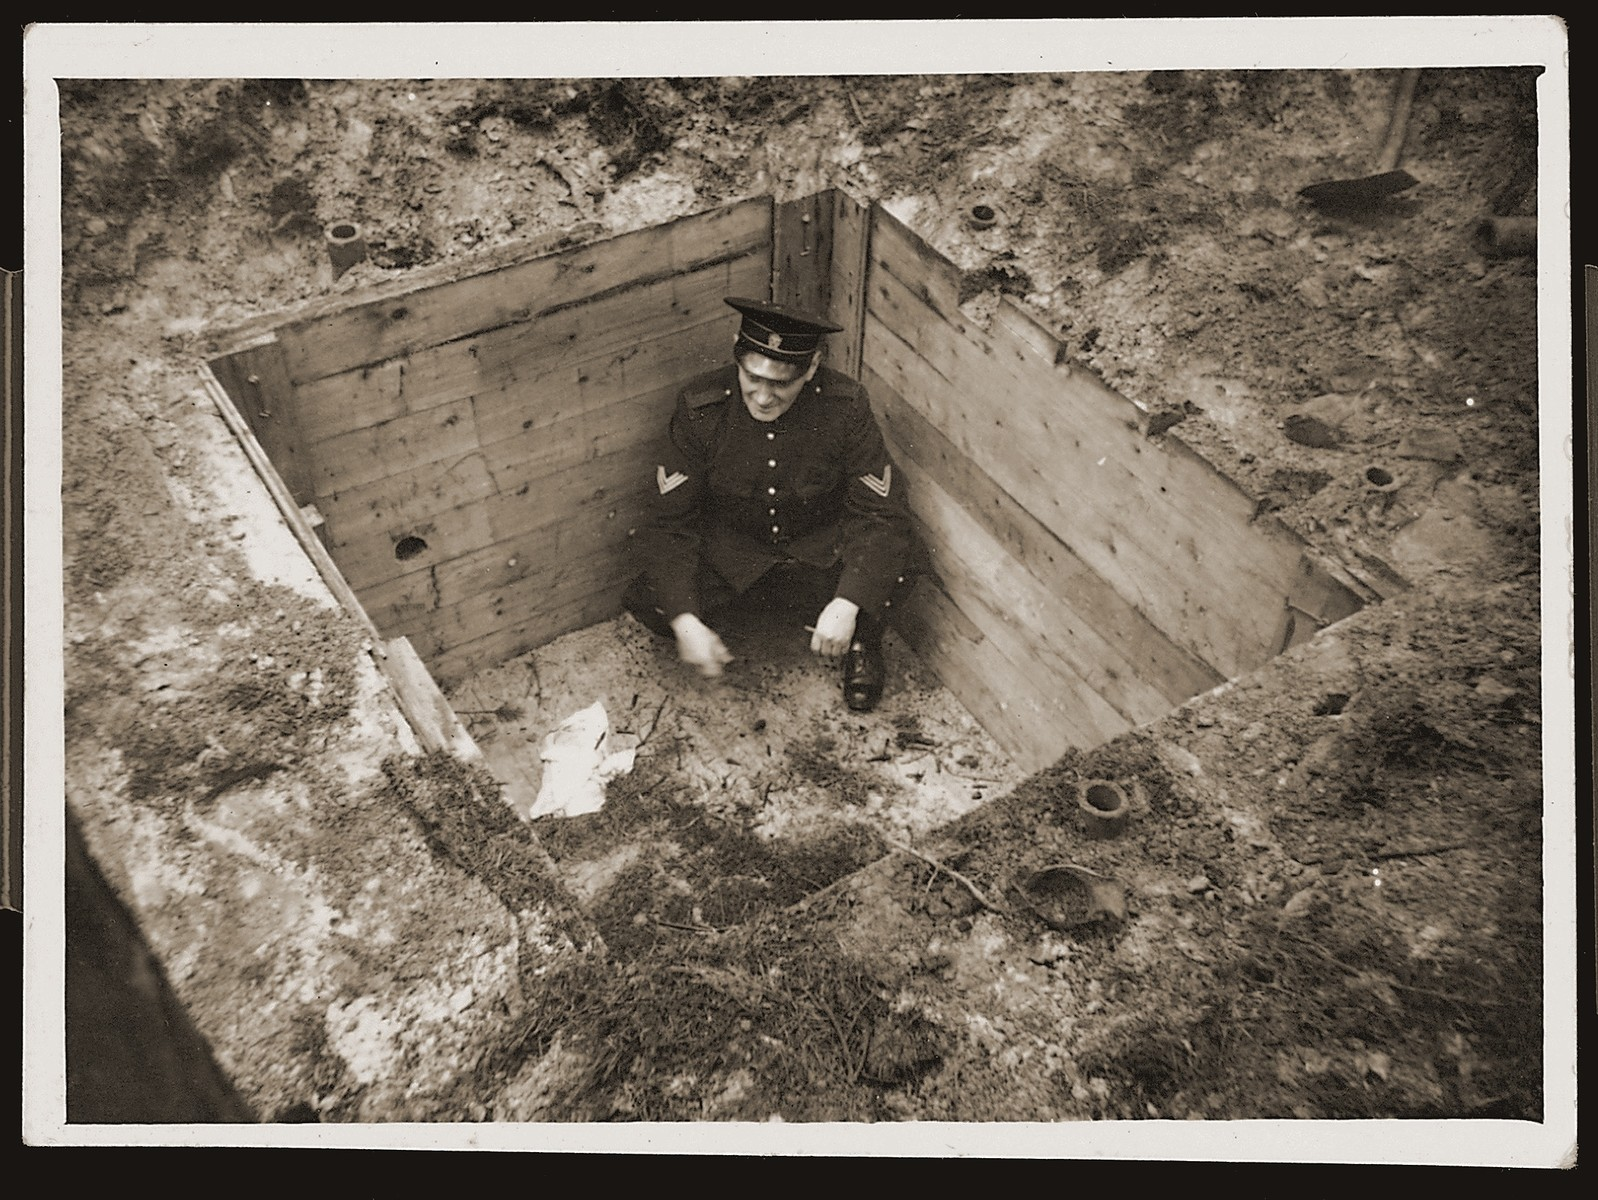 A Dutch policeman crouches inside a small bunker that served as a hiding place for Dutch Jews in the Eibergen region in 1942-1943.  The bunker was discovered by the Germans one day before this photograph was taken.  The bunker was, in actuality, a prefabricated hut that was ordered by two Jewish brothers, Abraham and Herman Maas from Eibergen.  It was delivered in sections to a site in the Hoones Forest outside Eibergen.  The Maas brothers got permission from the manager of the privately-owned forest to build a subterranean hiding place for themselves.  Two sympathetic non-Jews conveyed the materials, dug the hole and assembled the shelter, which had two rooms and a crude stove.  Initially, only the brothers hid there, but as times grew more desperate, 23 Jews were concealed in the bunker.  On March 27, 1943 a Dutch informer led Germans to the site.  All 23 were arrested and sent to Westerbork.  From there they were deported to Sobibor and killed.  After the war the informer was identified as E. Heijink and tried as a collaborator.  The photographer was a Dutchman, who was ordered to take pictures of the bunker the day after the Jews were captured.  He made an extra set of prints, which he kept secretly, and made available to resisters and surviving Jews after the liberation.  The policeman posed inside the bunker in order to better convey its size.